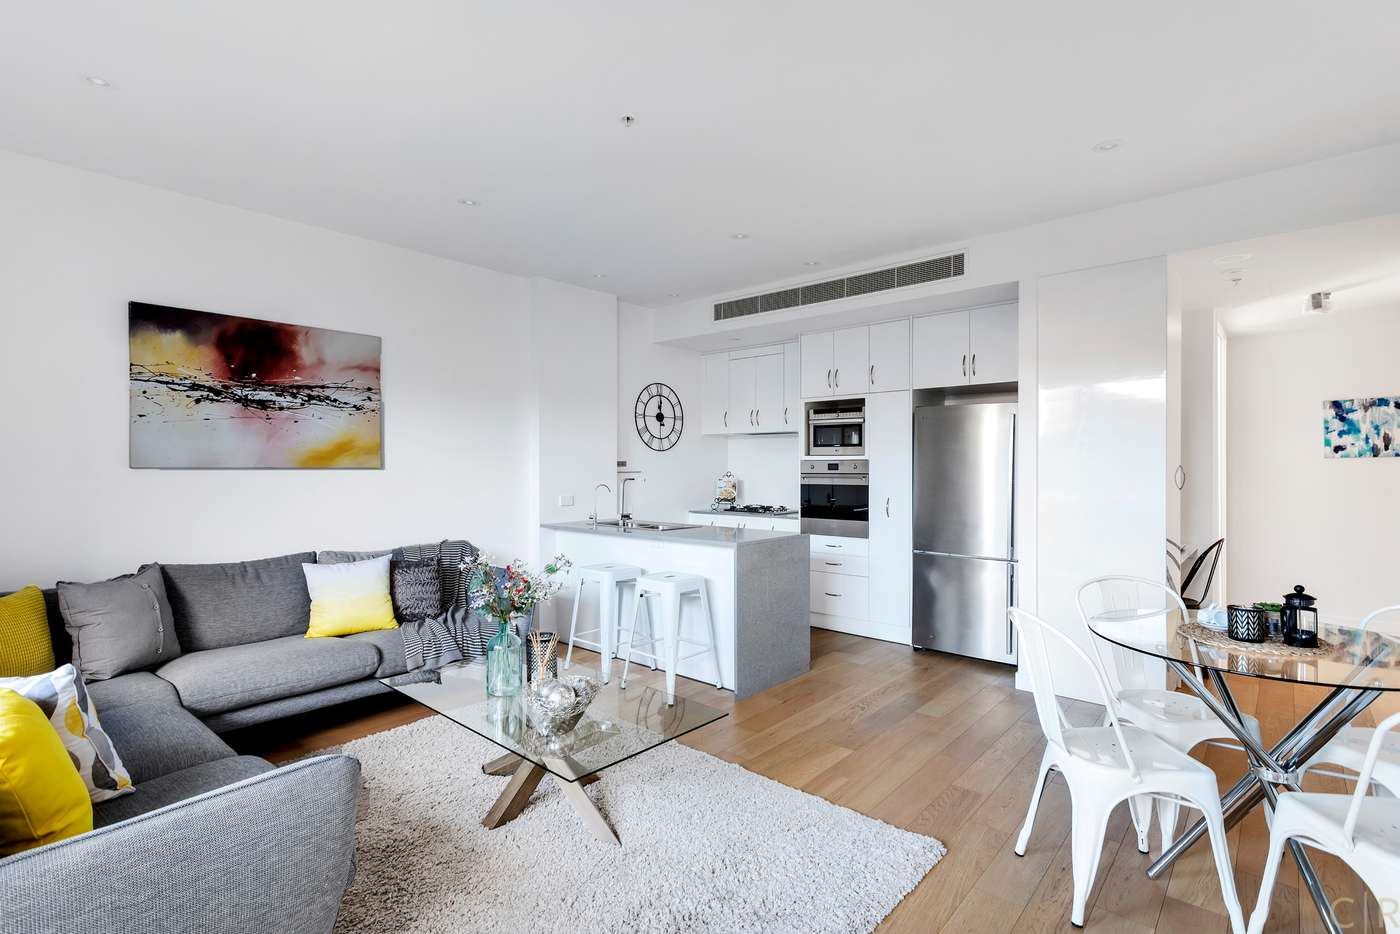 Main view of Homely apartment listing, 201/18 Surflen Street, Adelaide SA 5000